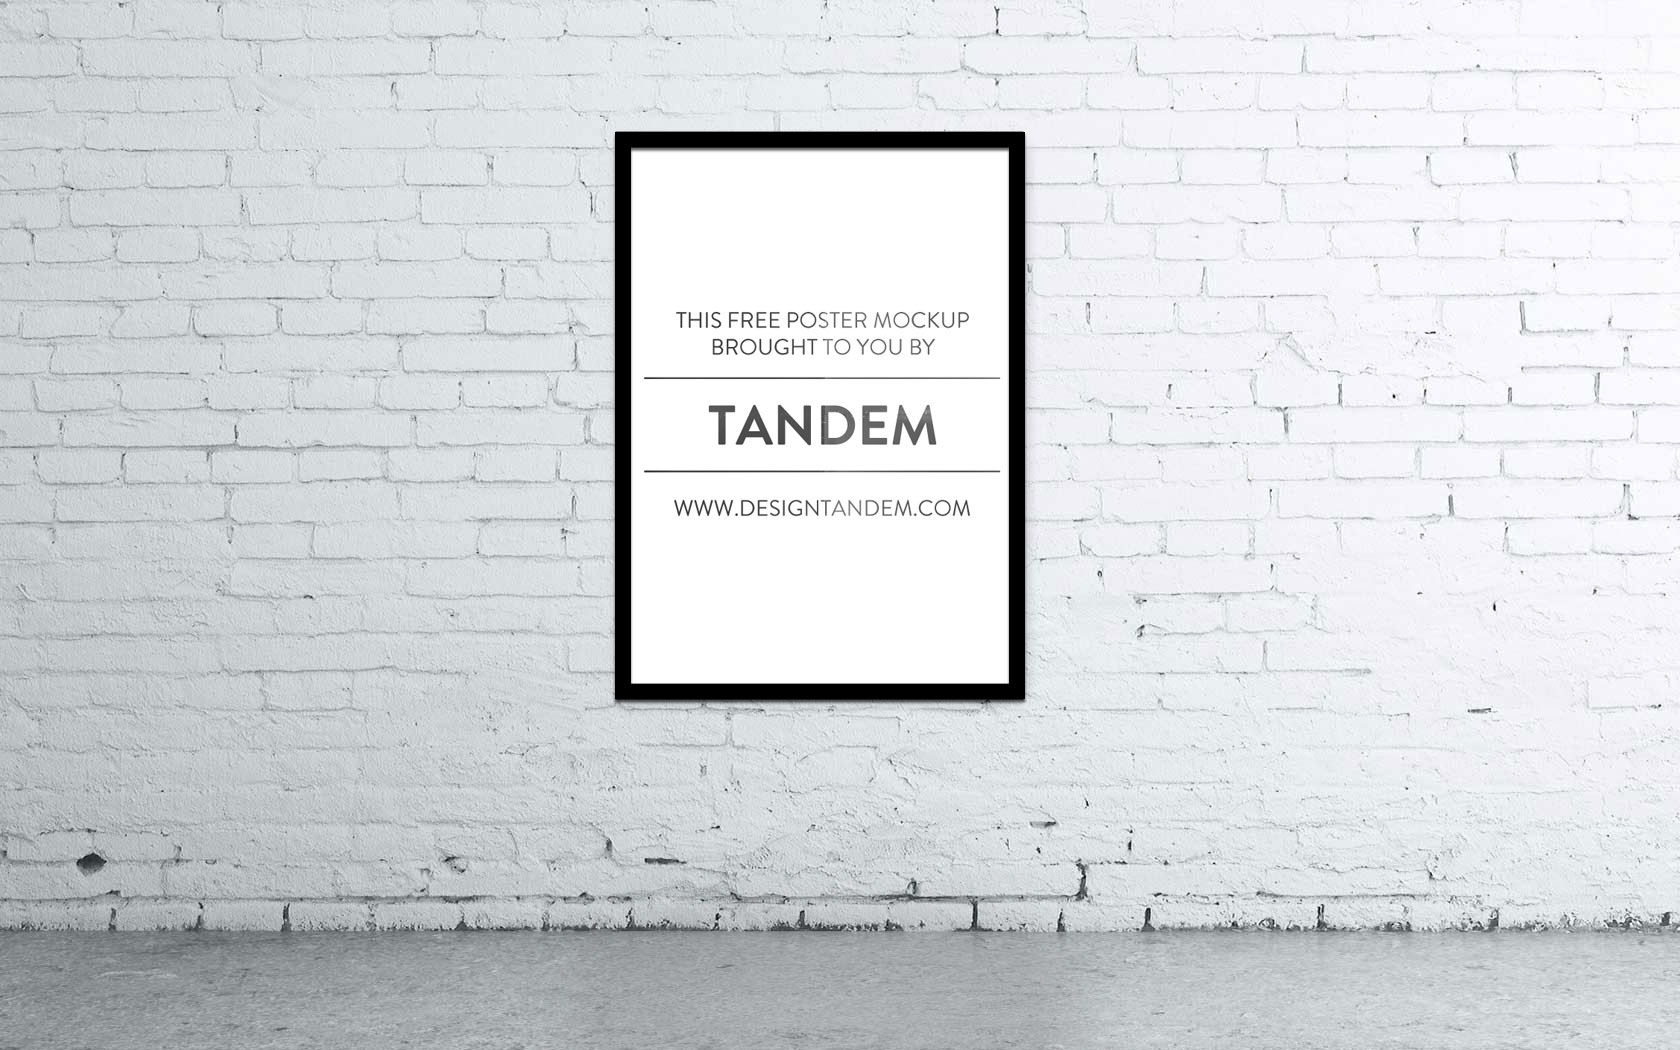 Wall Poster Mockup PSD - Free hi-res photorealistic wall poster Mockup. Brought to you by the team at Design TANDEM to help you display your work in a great way.Just click the image above to download the file.